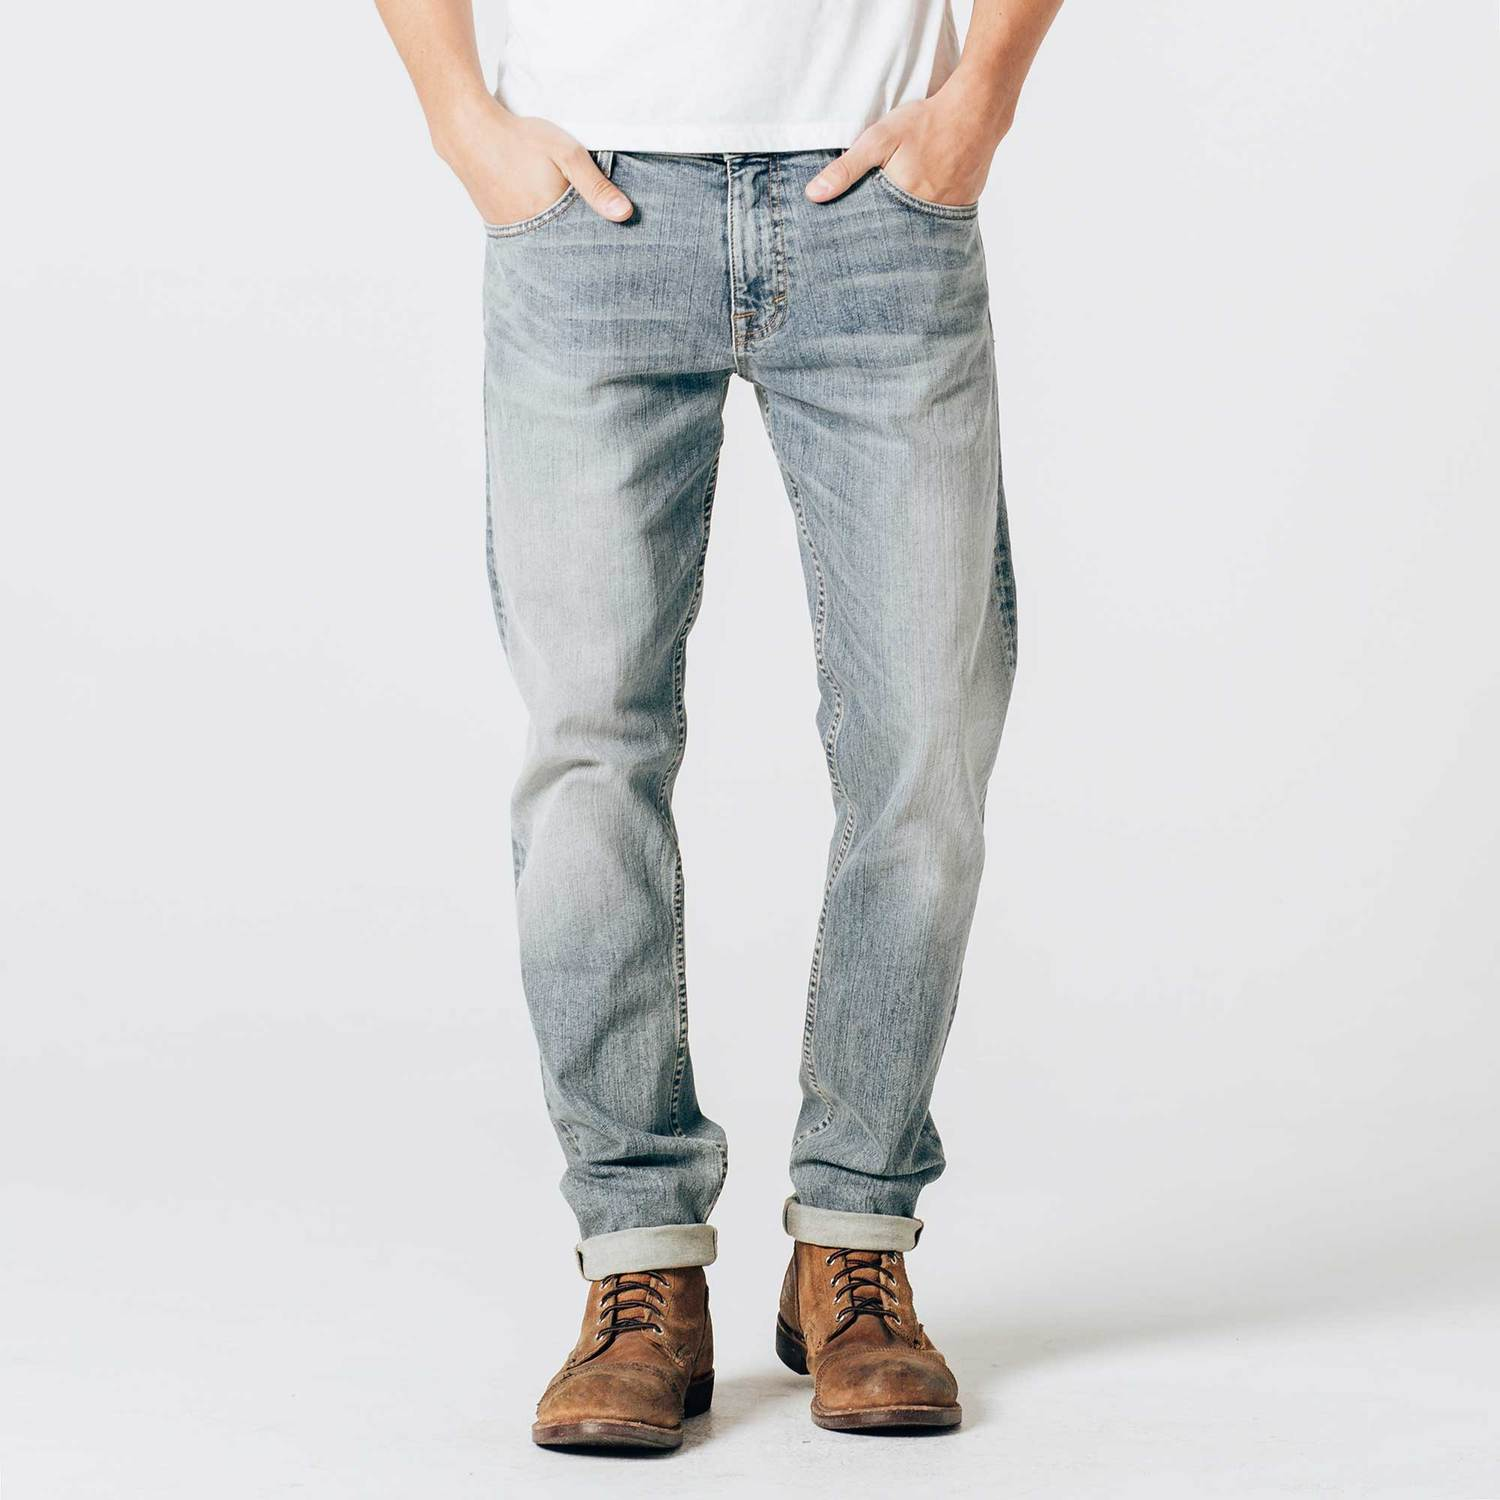 Slim Jeans in Light Wash